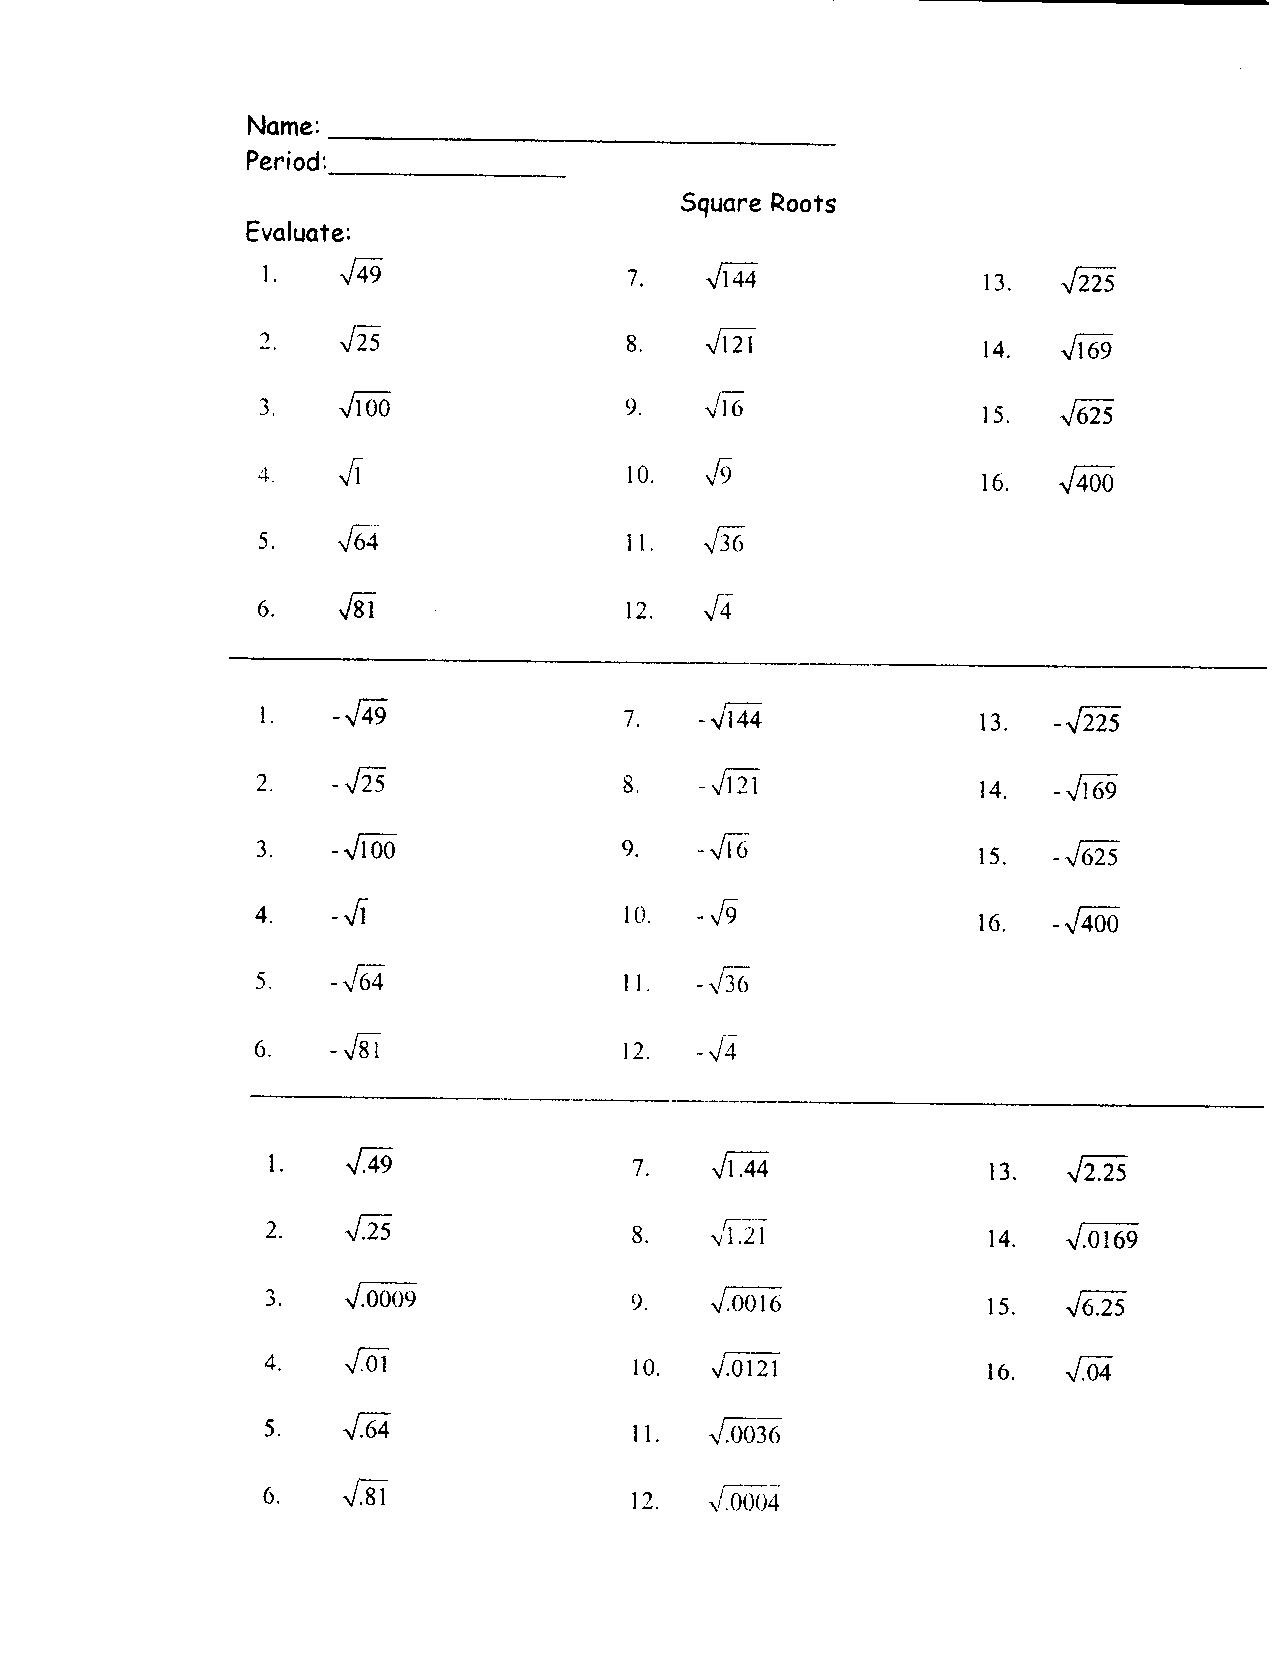 Square Root Worksheets 8th Grade 31 Perfect Square Roots Worksheet Worksheet Resource Plans